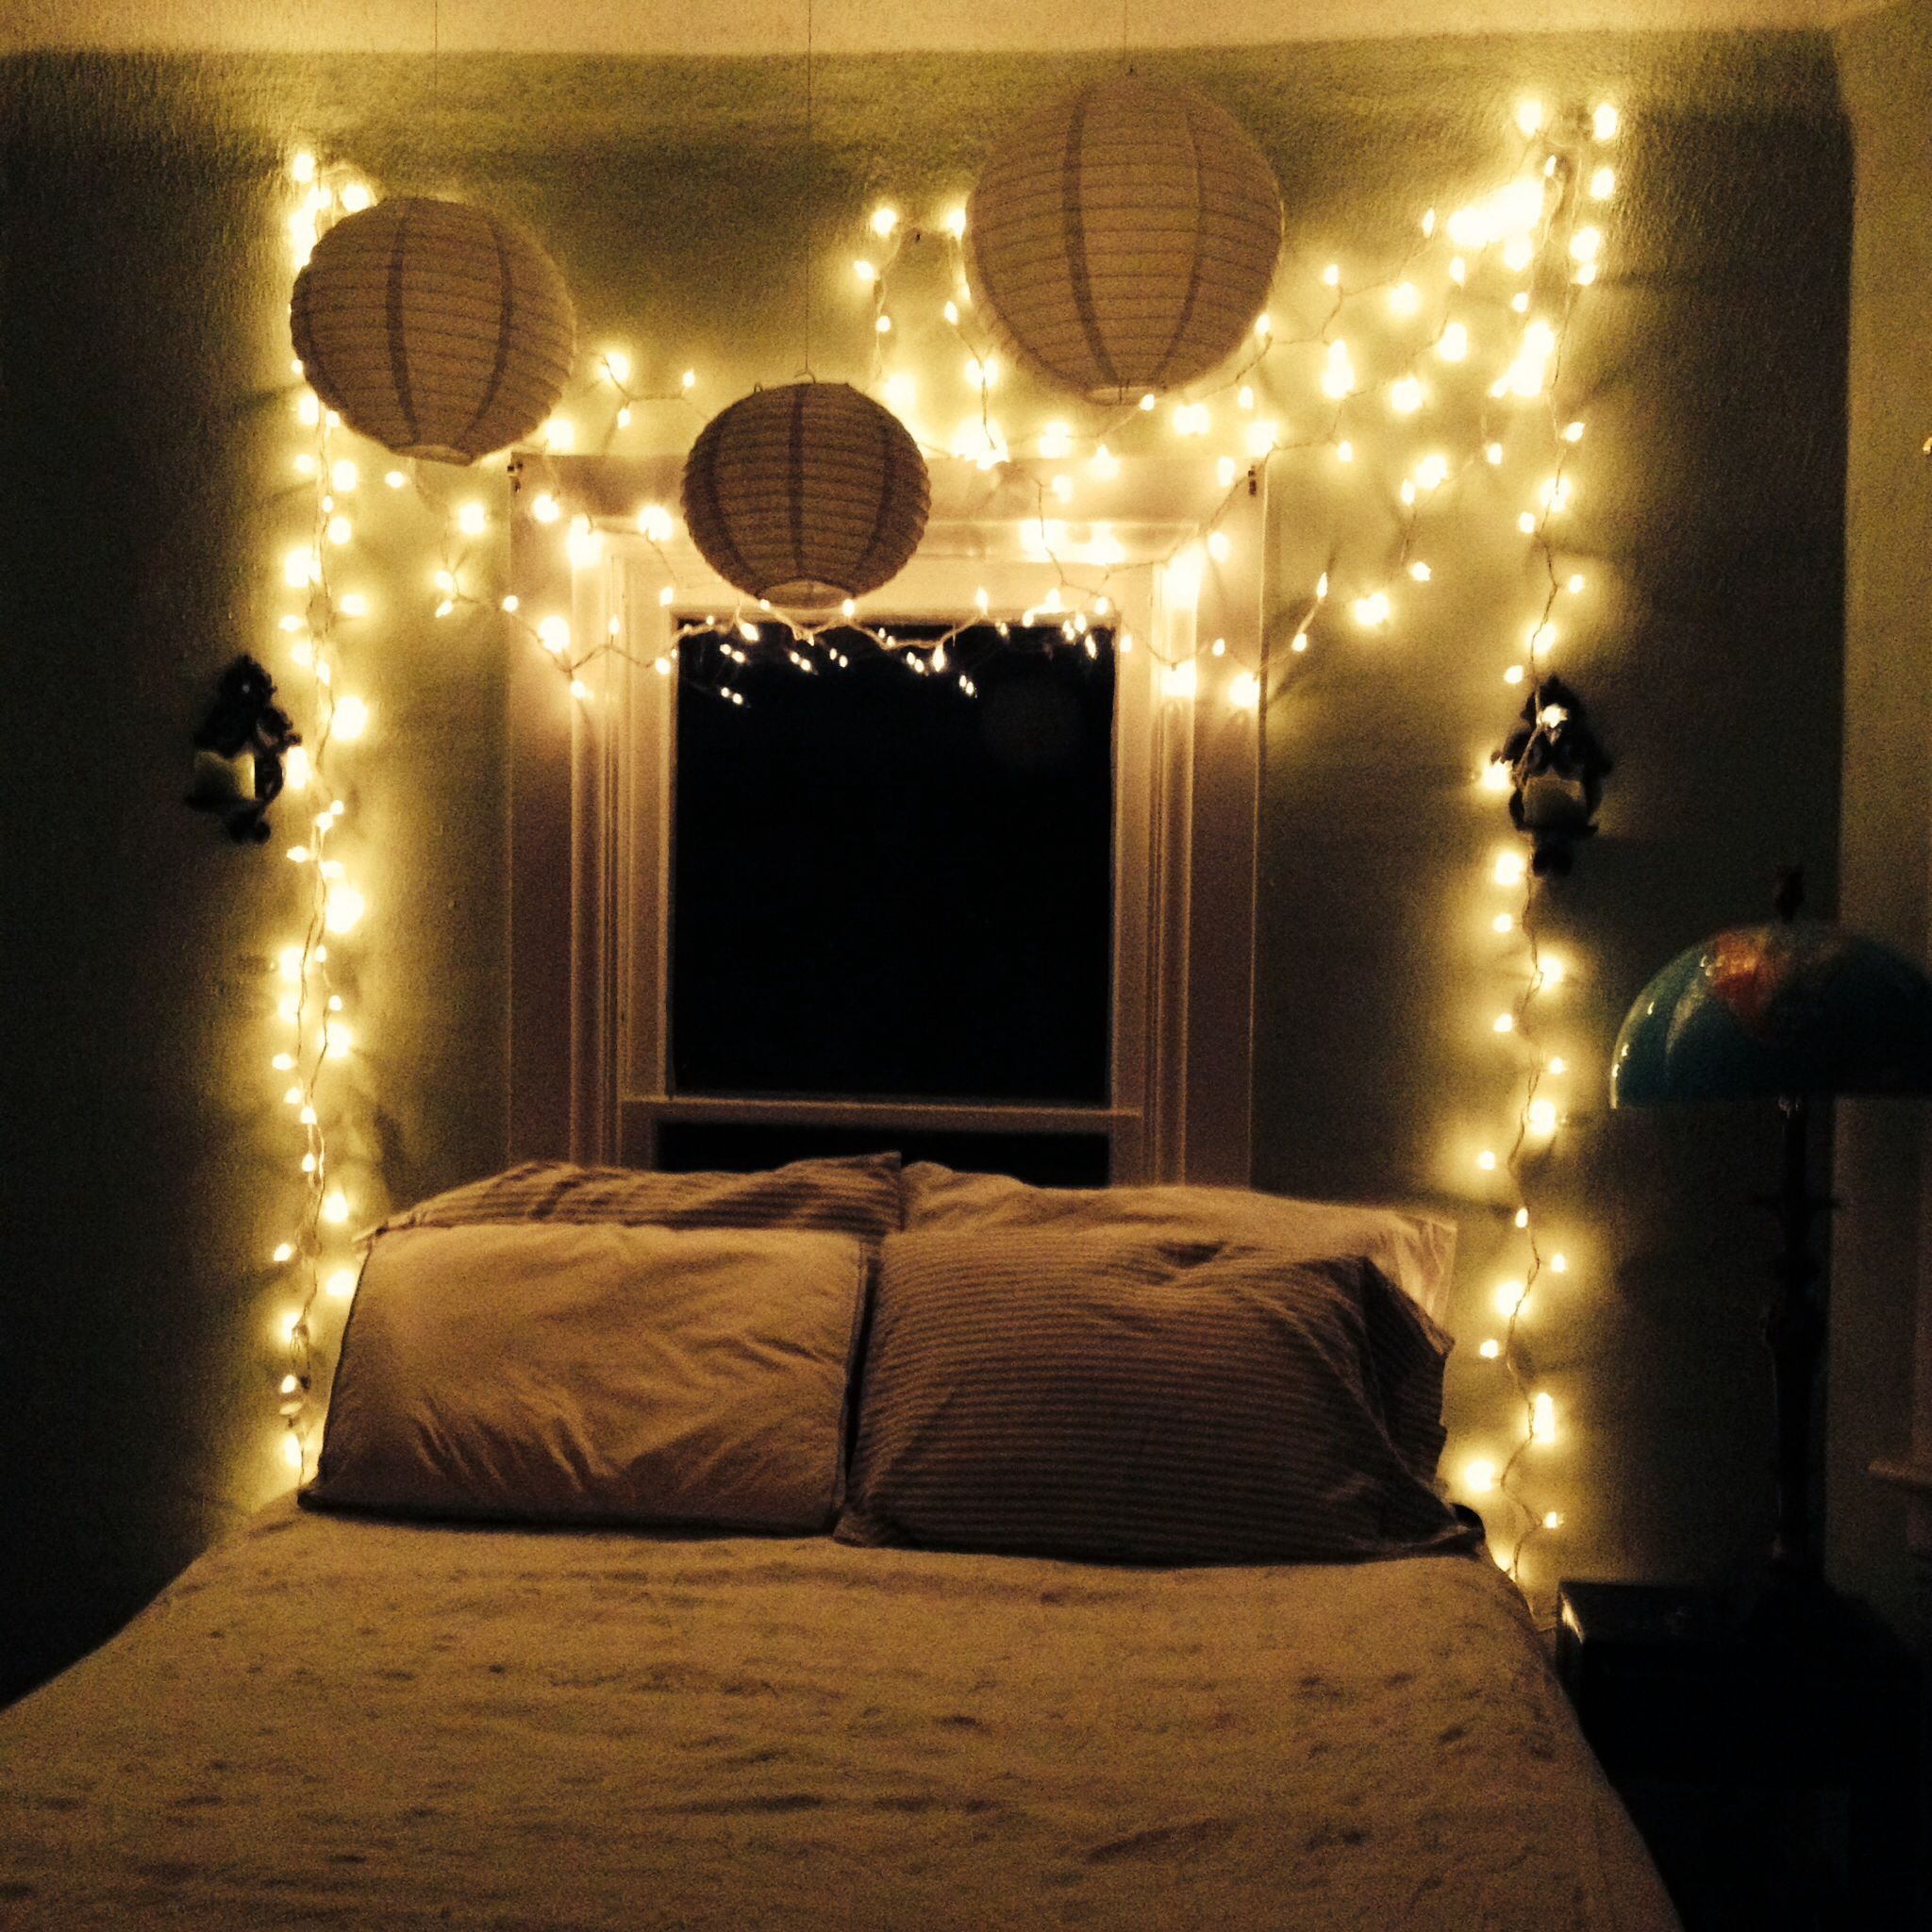 My bedroom oasis twinkle lights white and stripes - String lights for bedroom ...